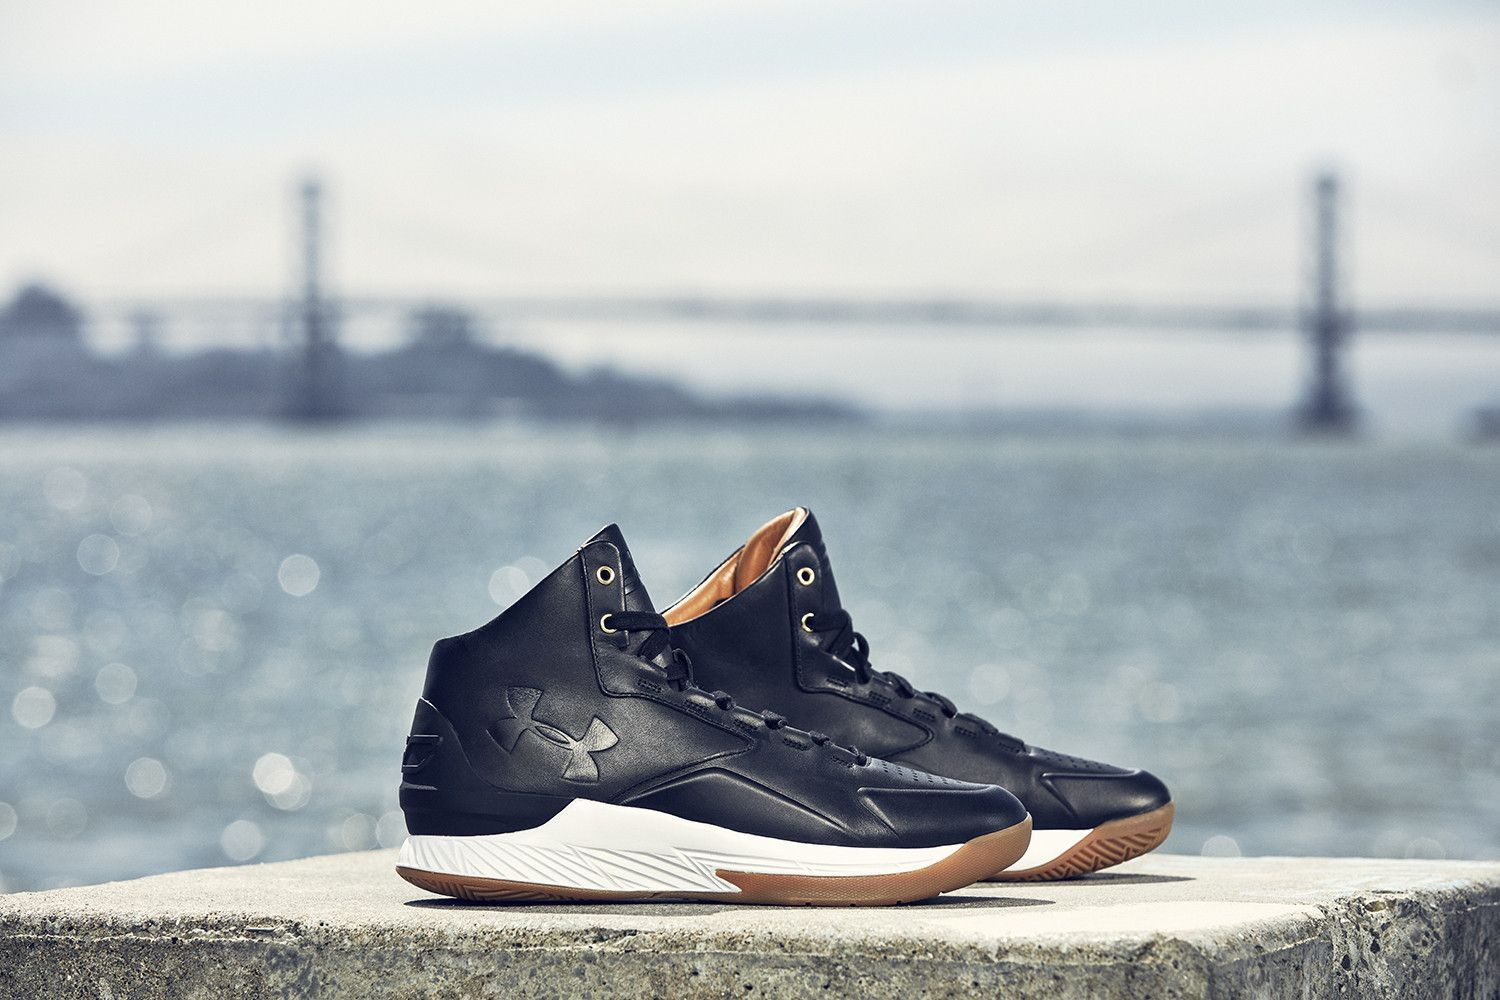 best service ae825 e0a12 UNDER ARMOUR CURRY 1 MID LUX LEATHER - BLACK | Products ...